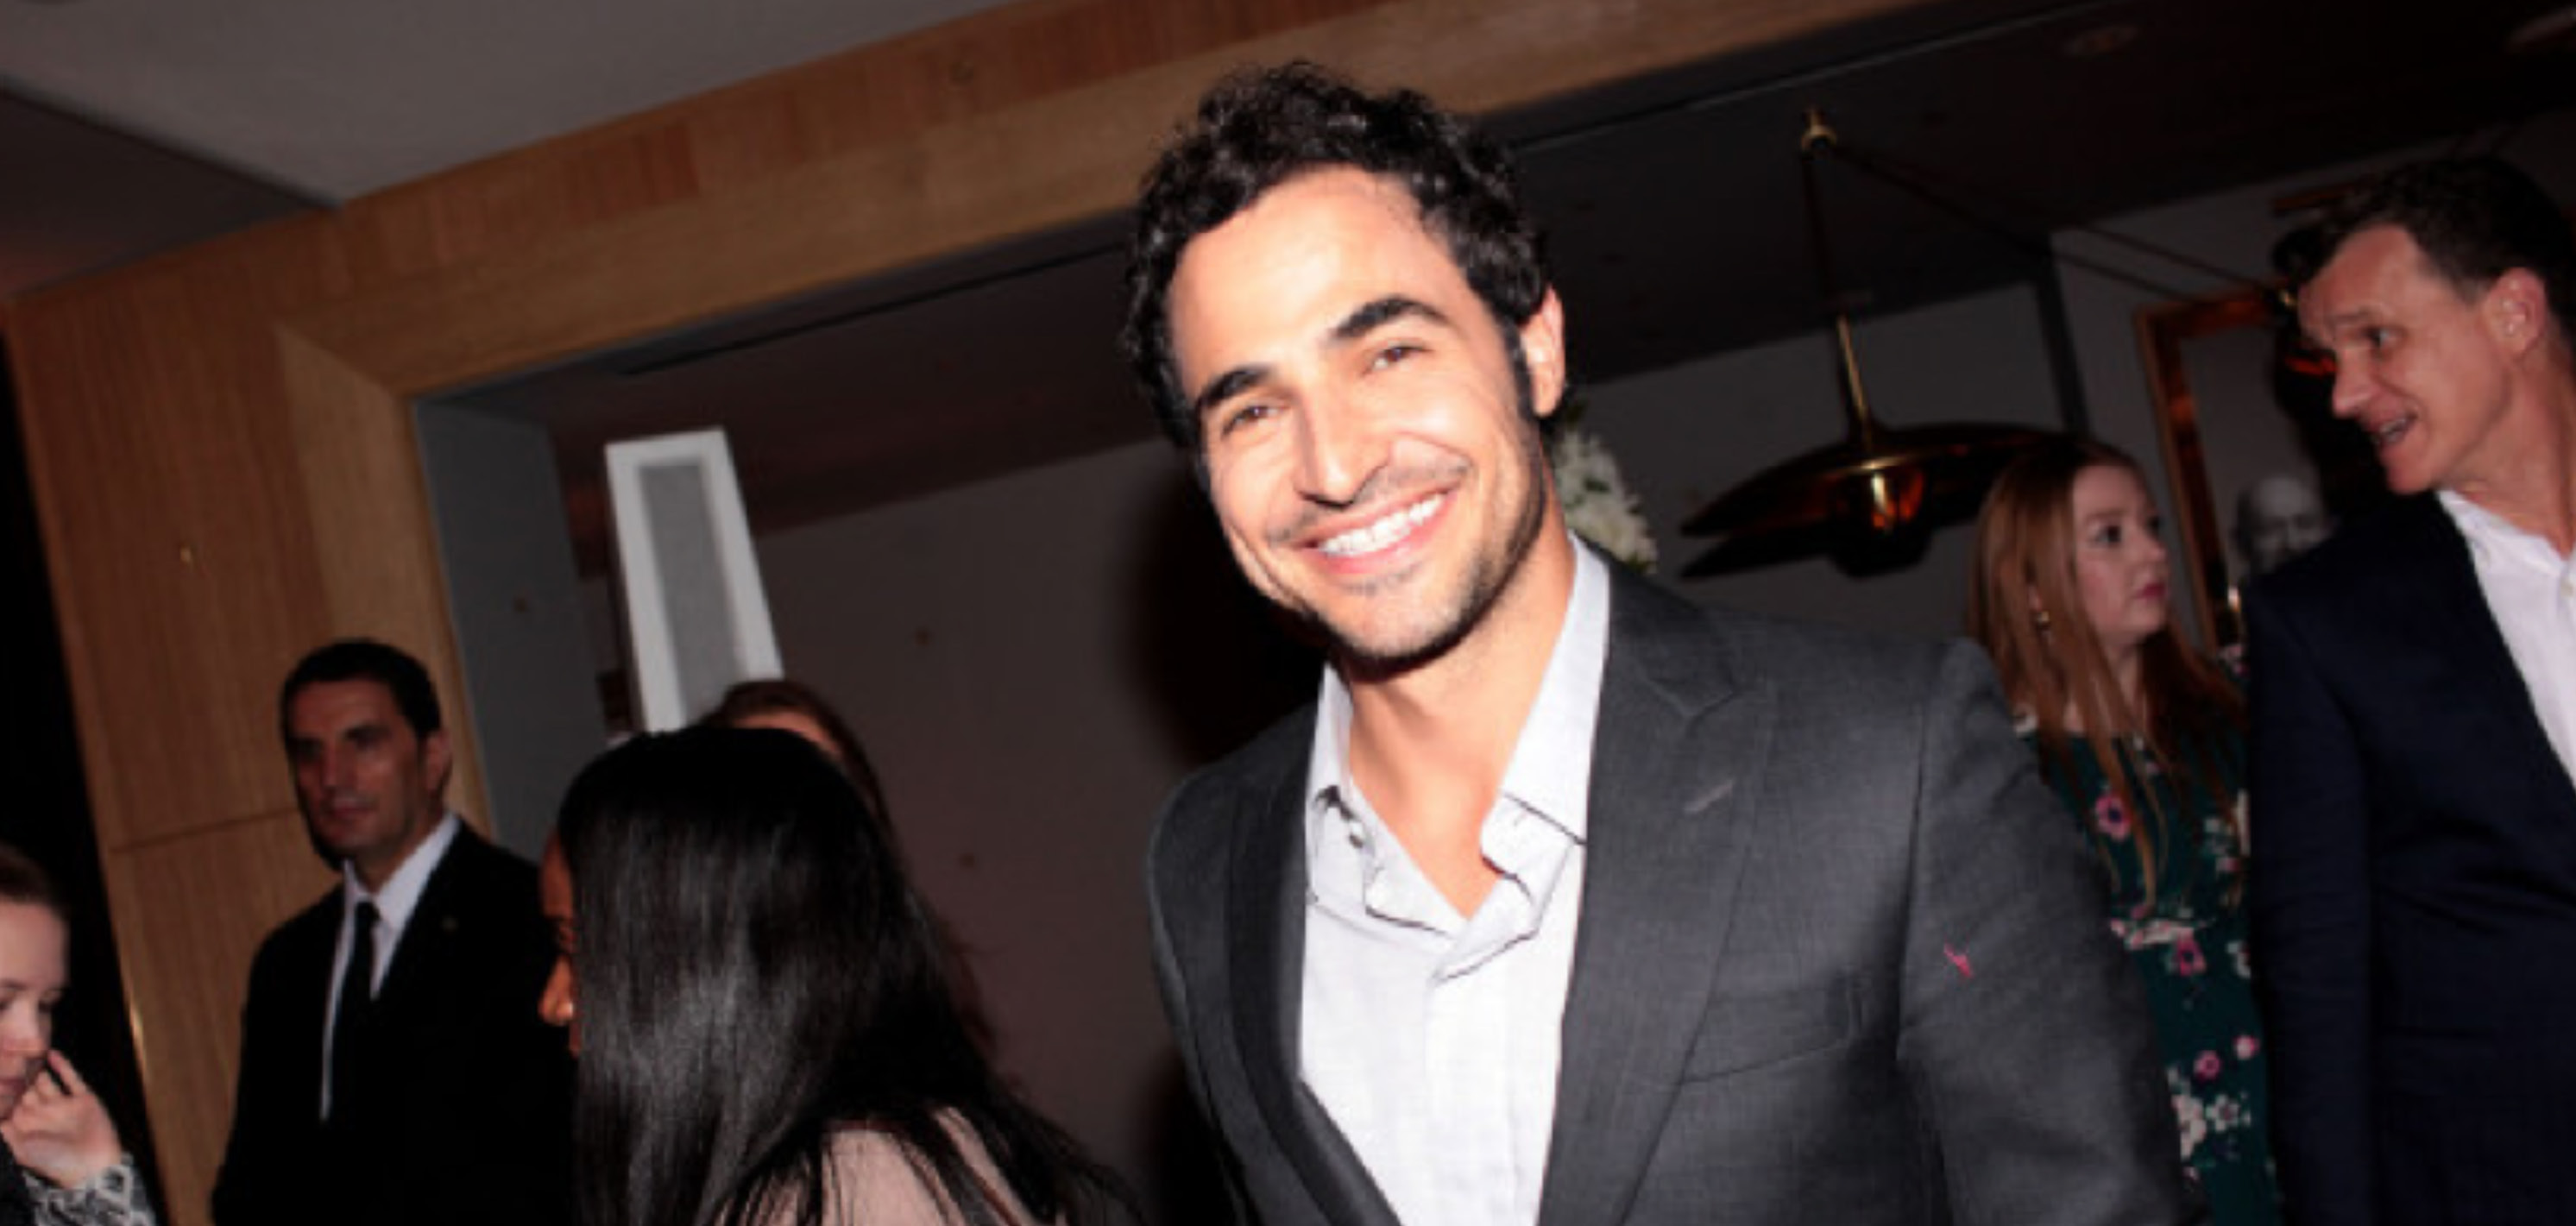 ZAC POSEN BRAND AND INTELLECTUAL PROPERTY SOLD TO CENTRIC BRANDS